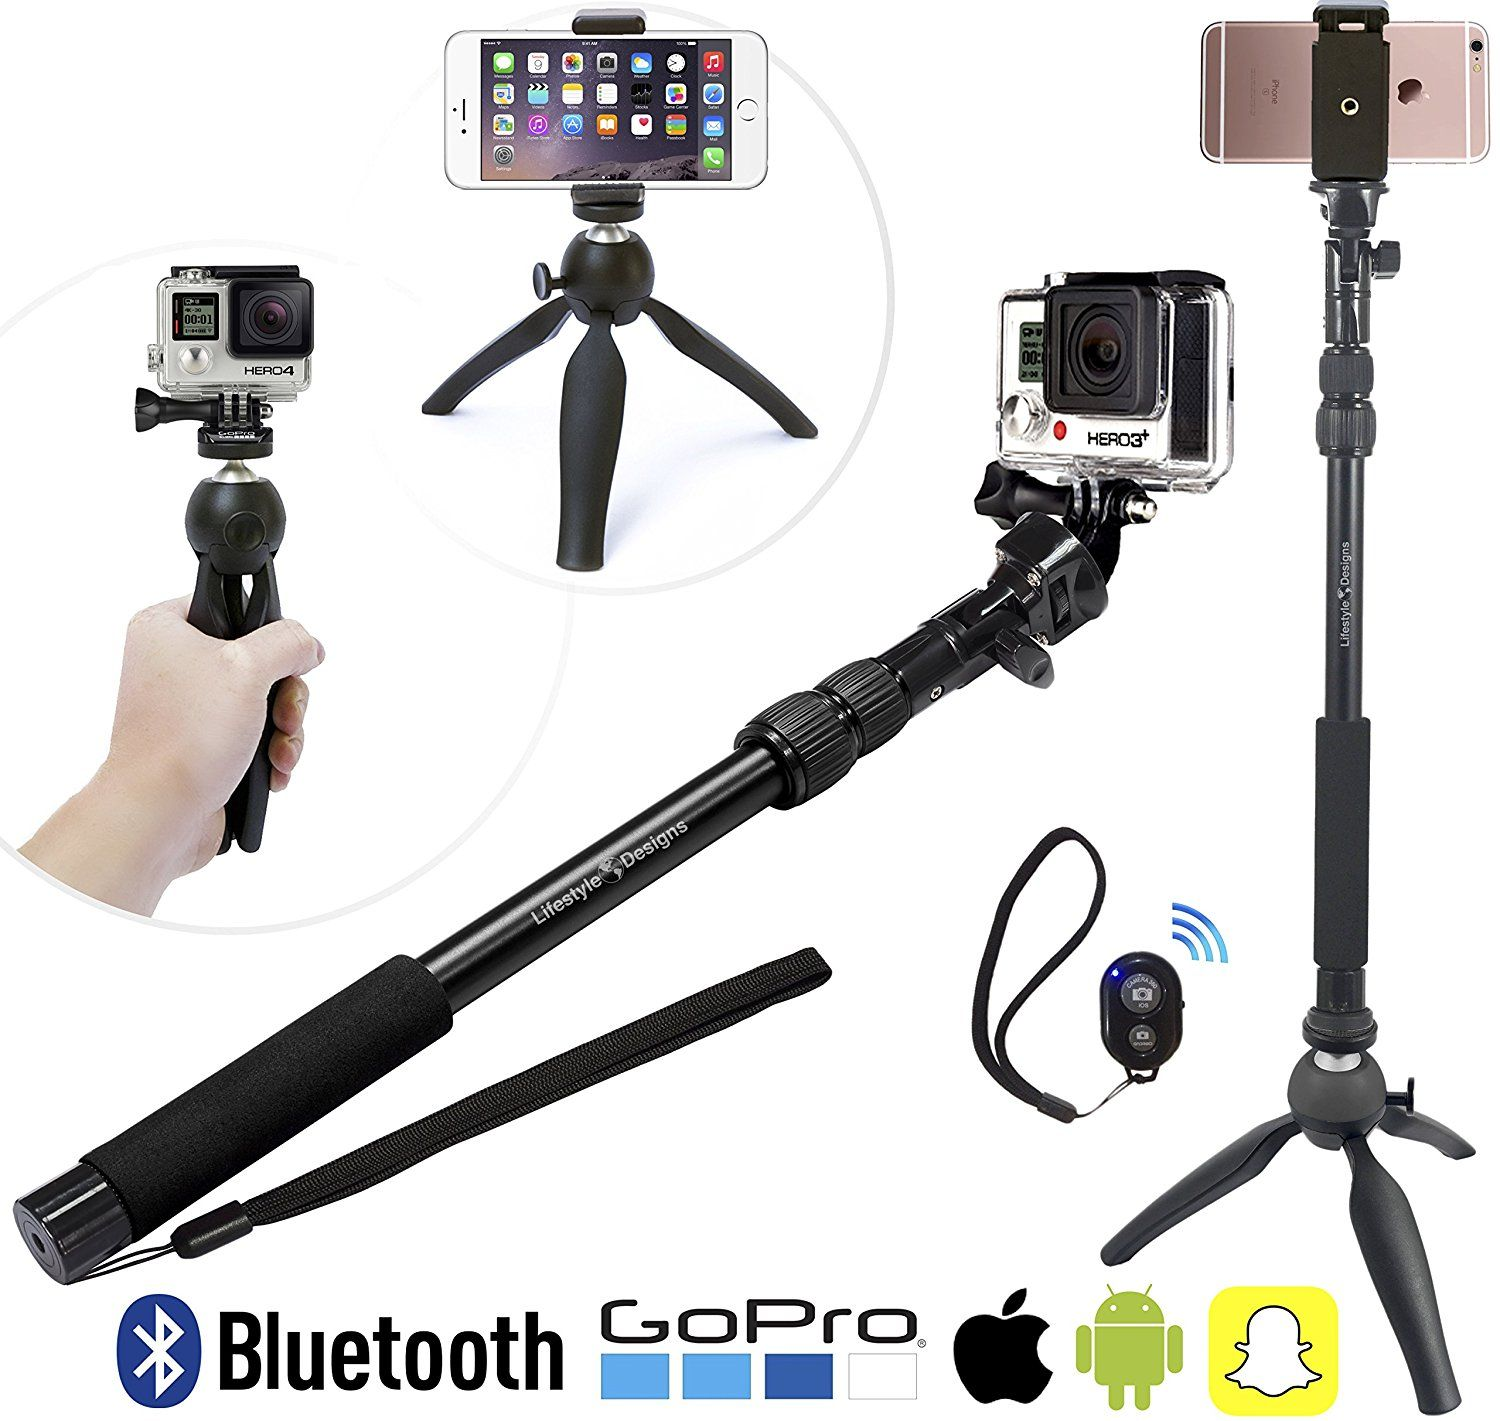 Premium HD Selfie Stick and Tripod 3 in 1 Video Kit for New iPhone 7 7 Plus GoPro Hero5 Android or Camera Bluetooth Remote